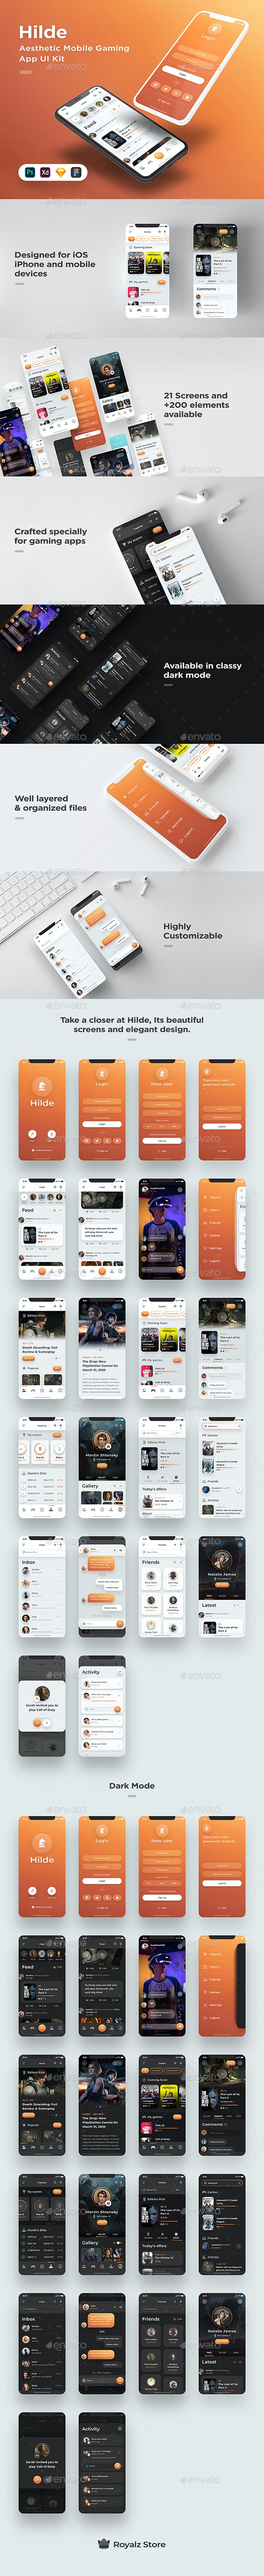 Hilde - Gaming App UI Kit - Available for Figma, Sketch, XD & Photoshop - User Interfaces Web Elements